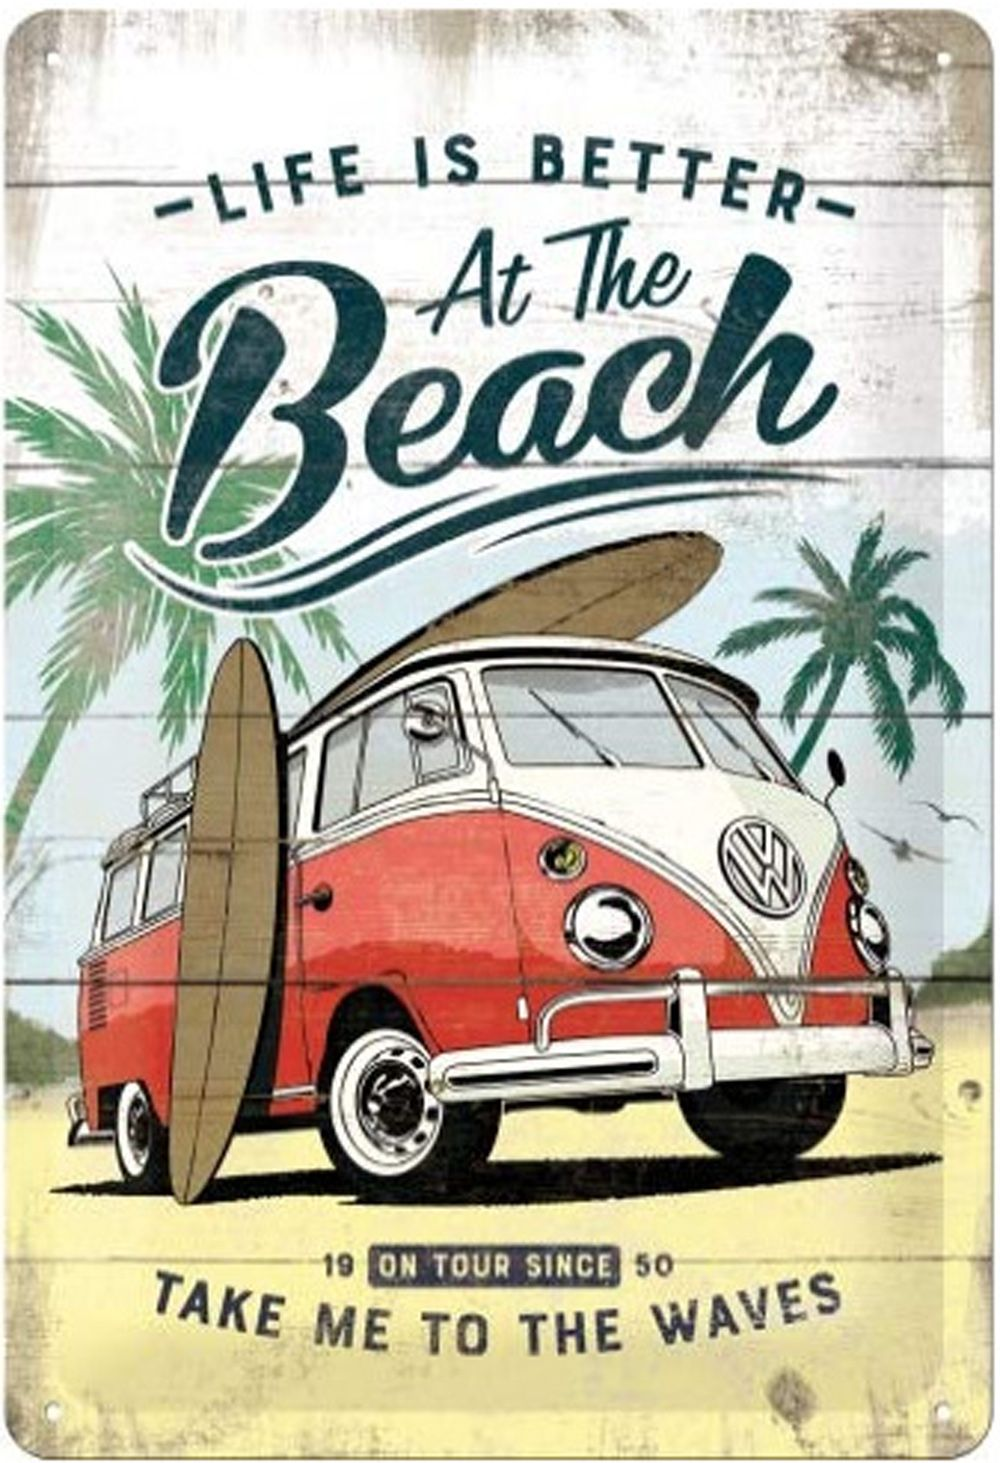 Retro Nostalgie Blechschild Vw Bully Beach In 2020 Vintage Blechschilder Retro Schilder